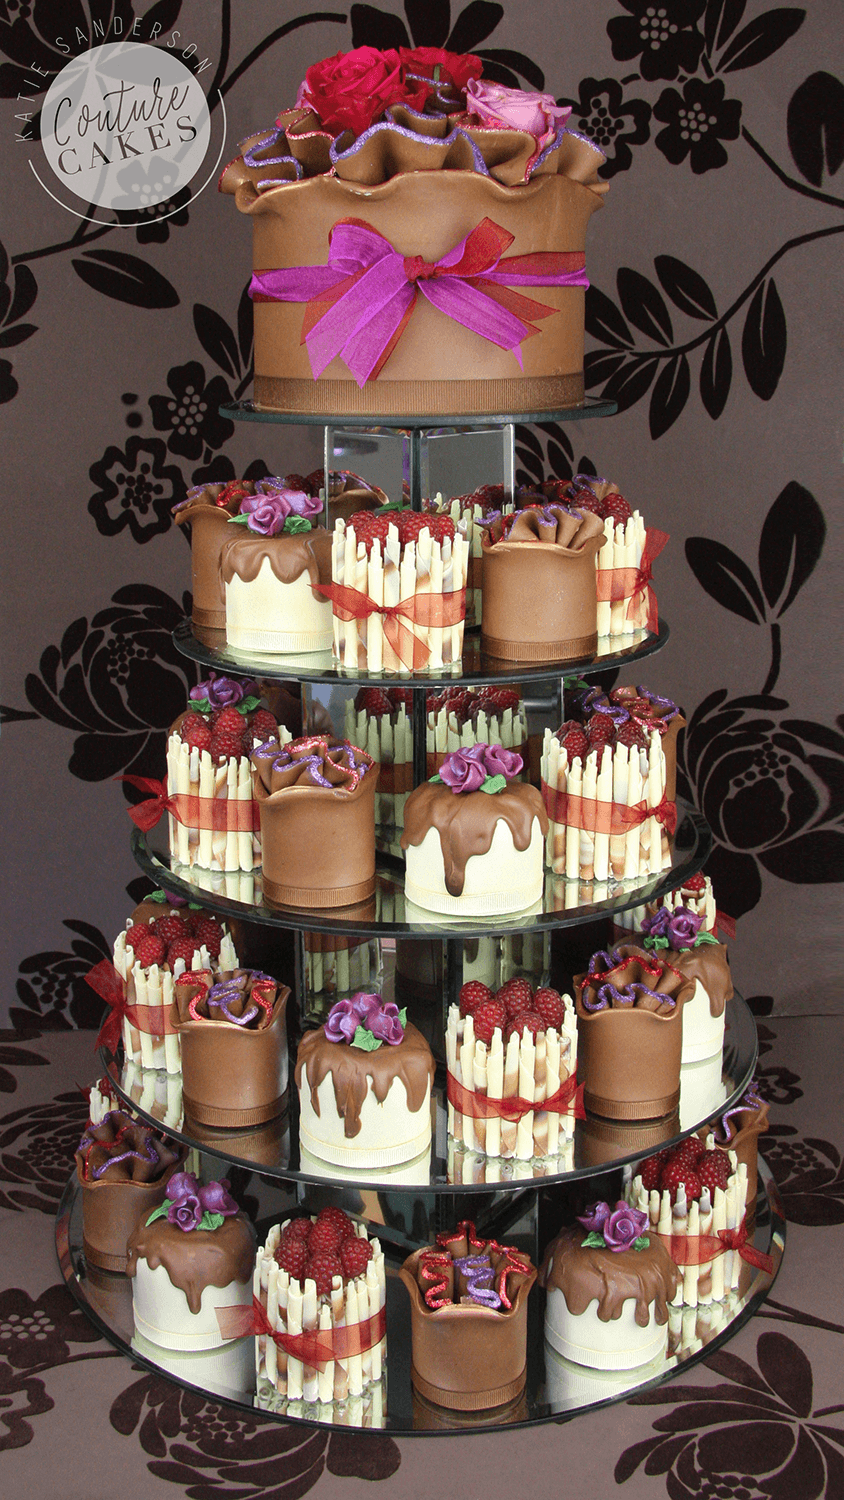 Serves 46 mini cakes & 20 portion top tier, Price as pictured £577 (46 mini cakes & 20 portion top tier)